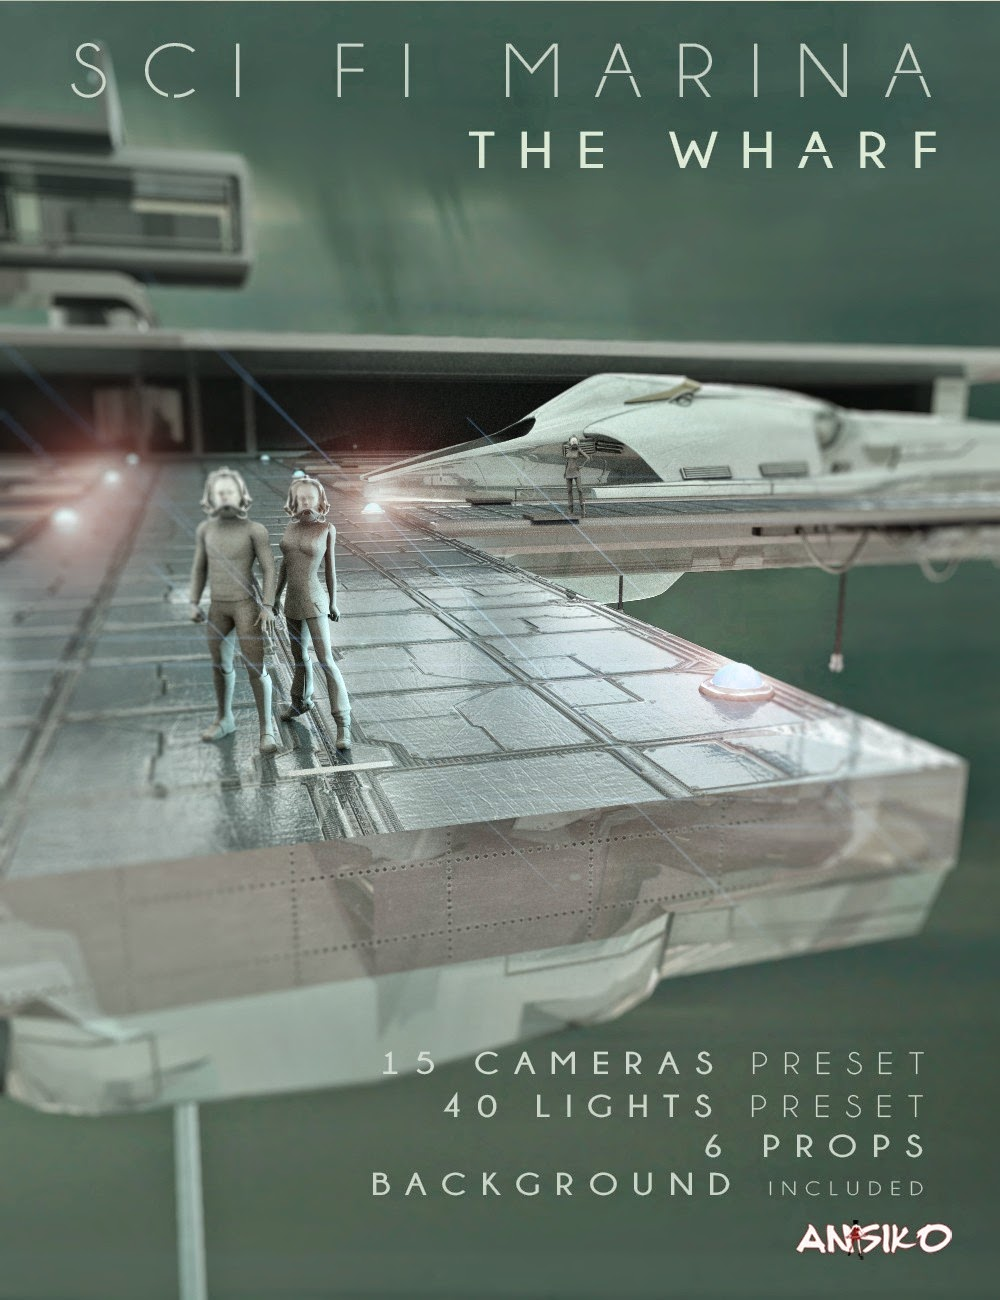 SCI FI MARINA The Wharf